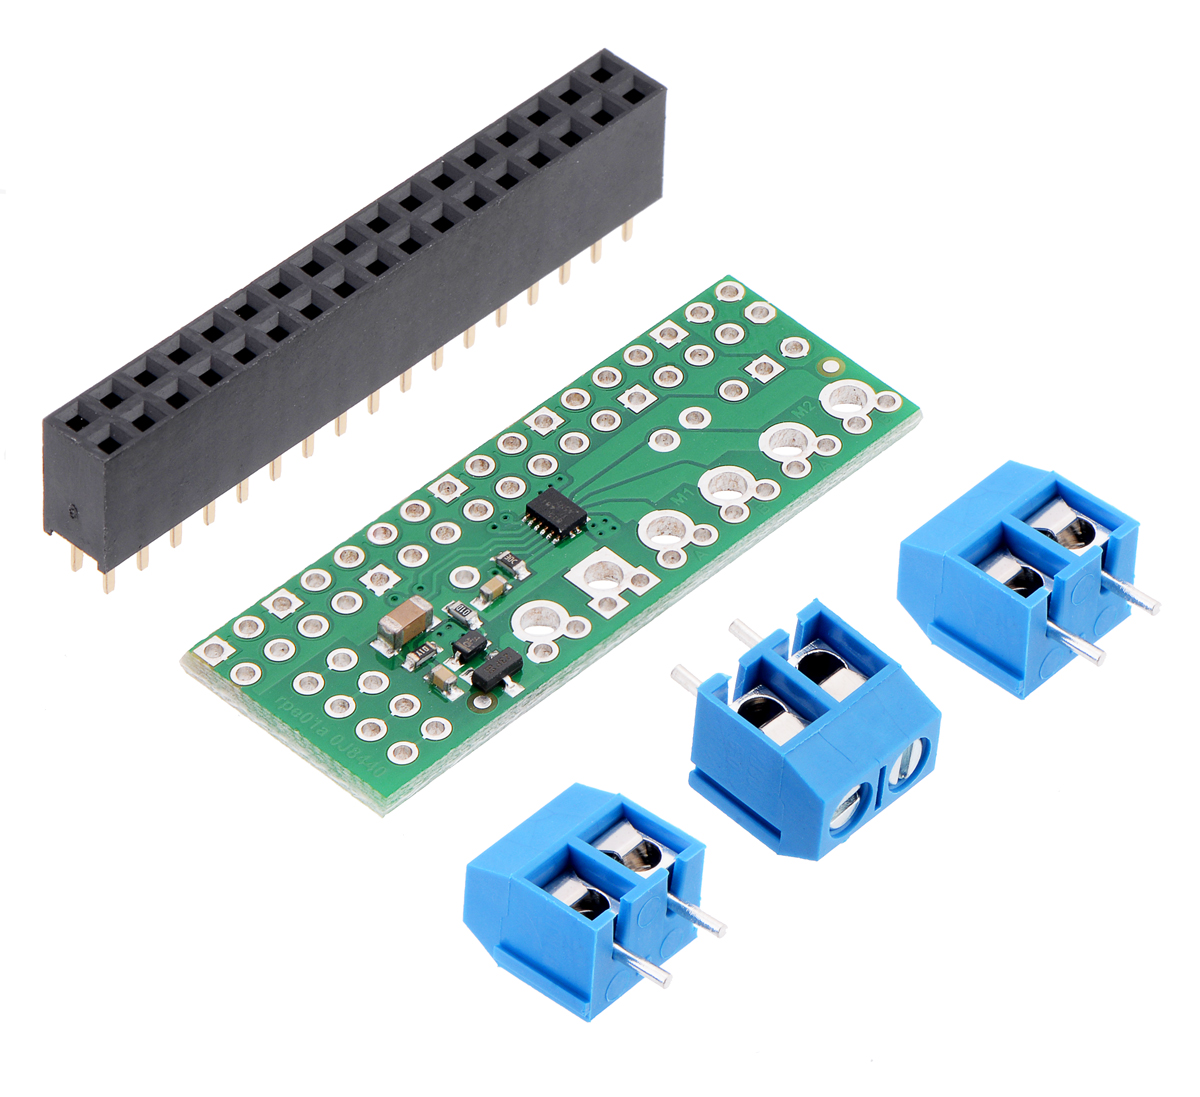 0J6601.1200?2140841fab1f96a4db8fbfdb7cdb9770 pololu drv8835 dual motor driver kit for raspberry pi  at n-0.co